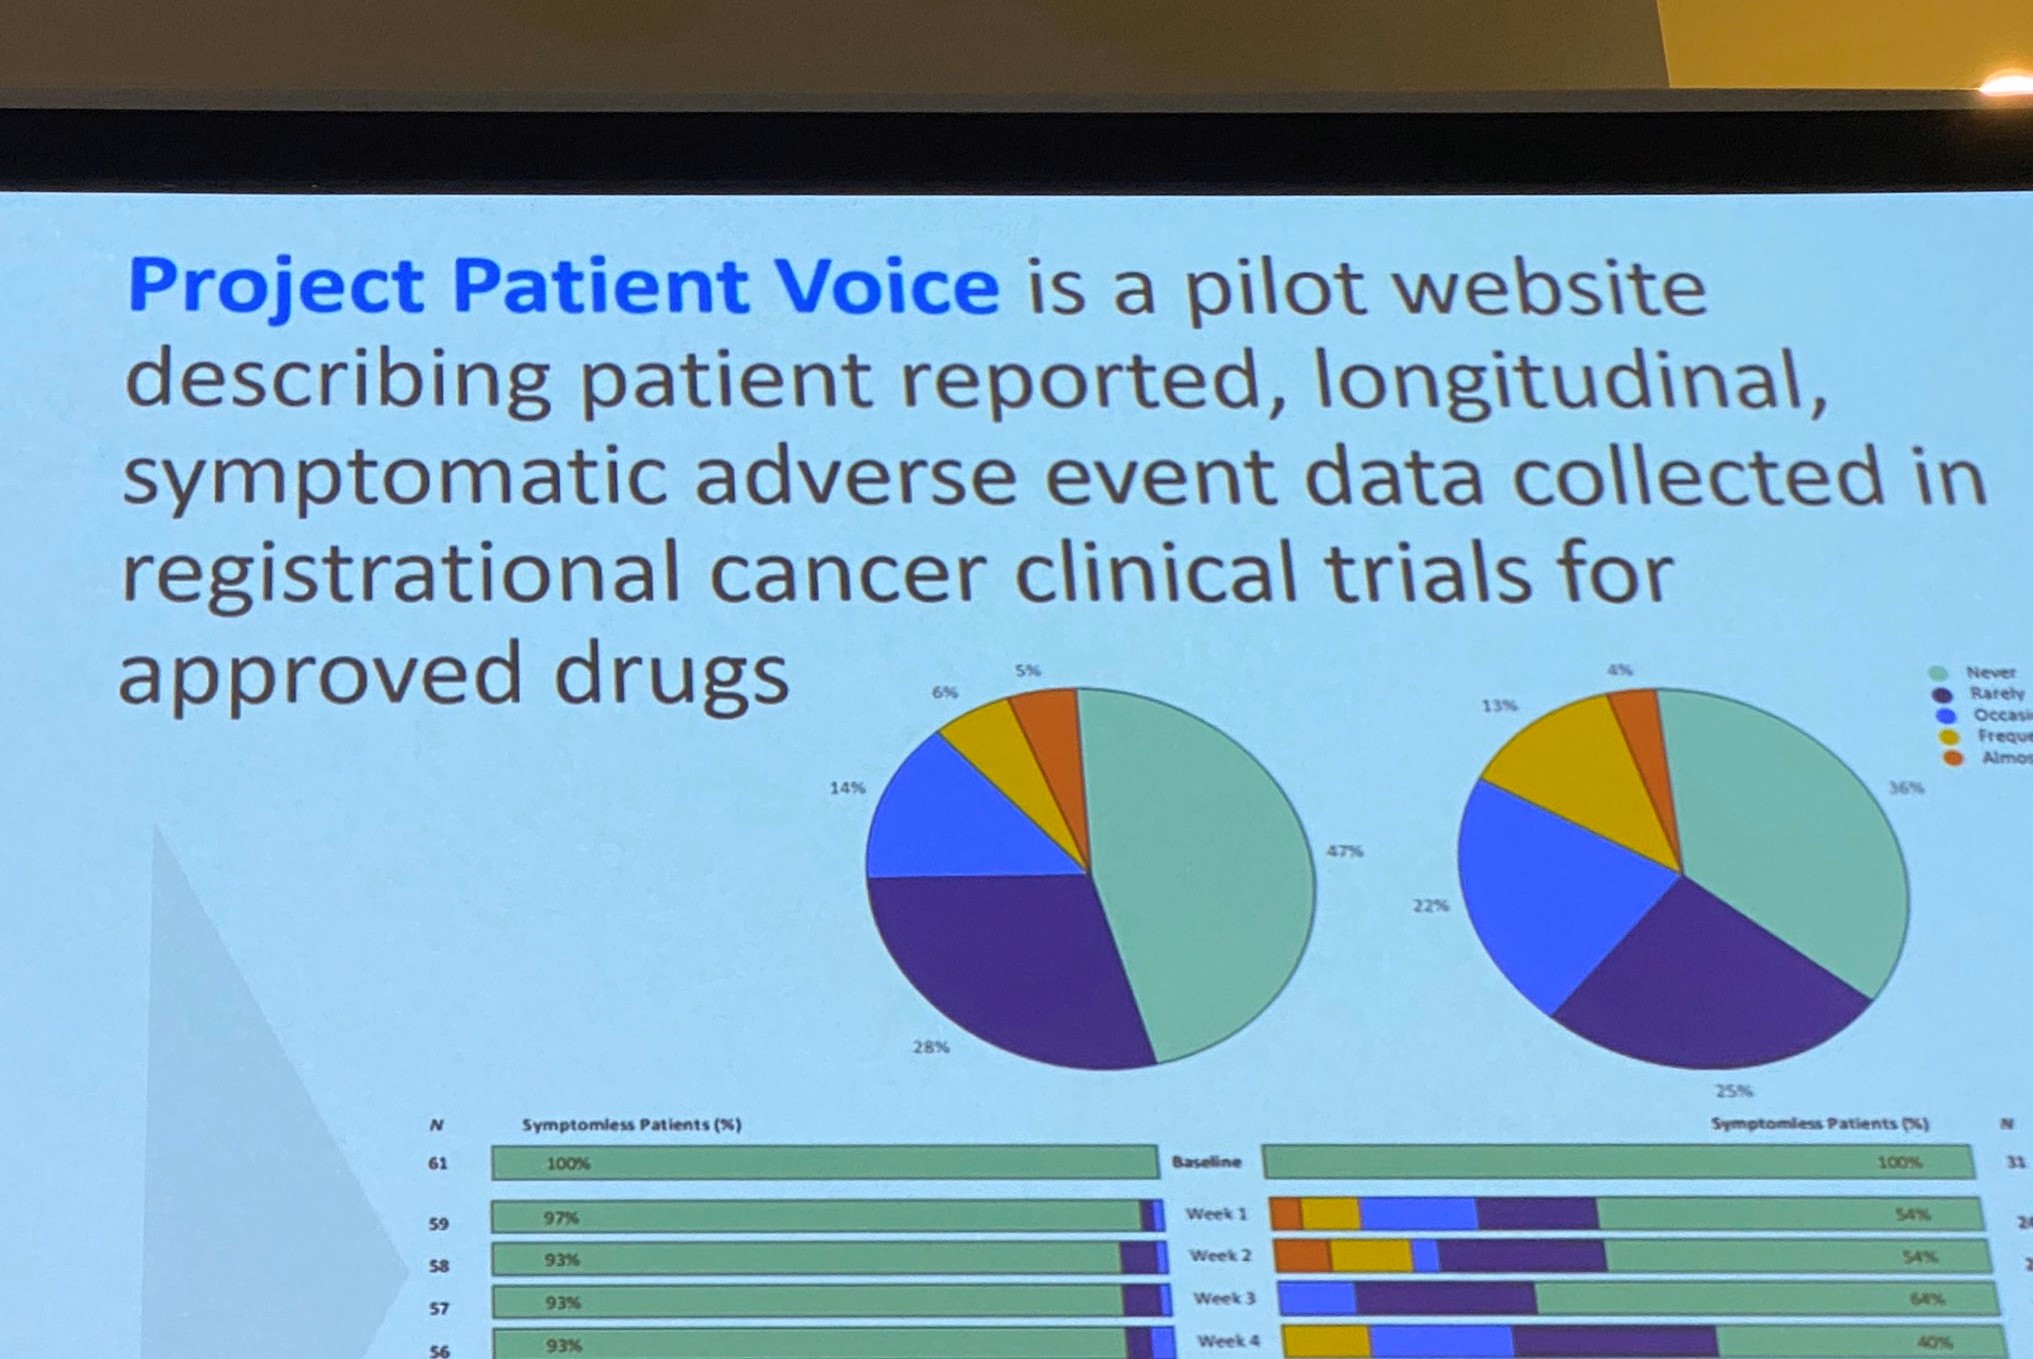 OCE Project Patient Voice: Project Patient Voice is an initiative by the OCE that records patient reports of adverse effects during clinical trials for cancer.